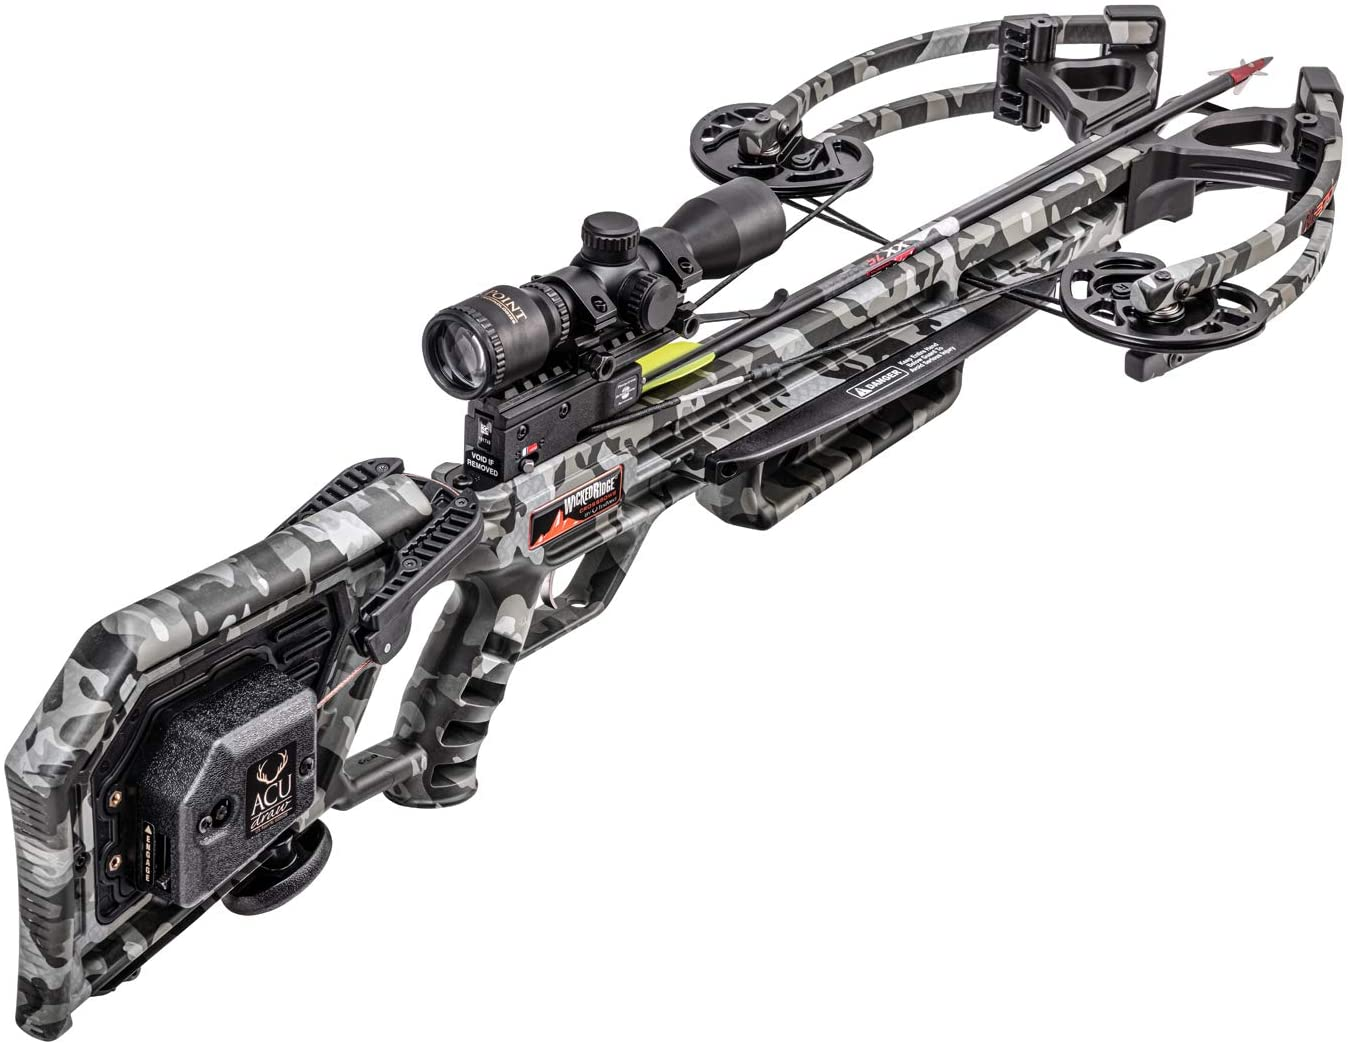 Wicked Ridge M370 Crossbow Review